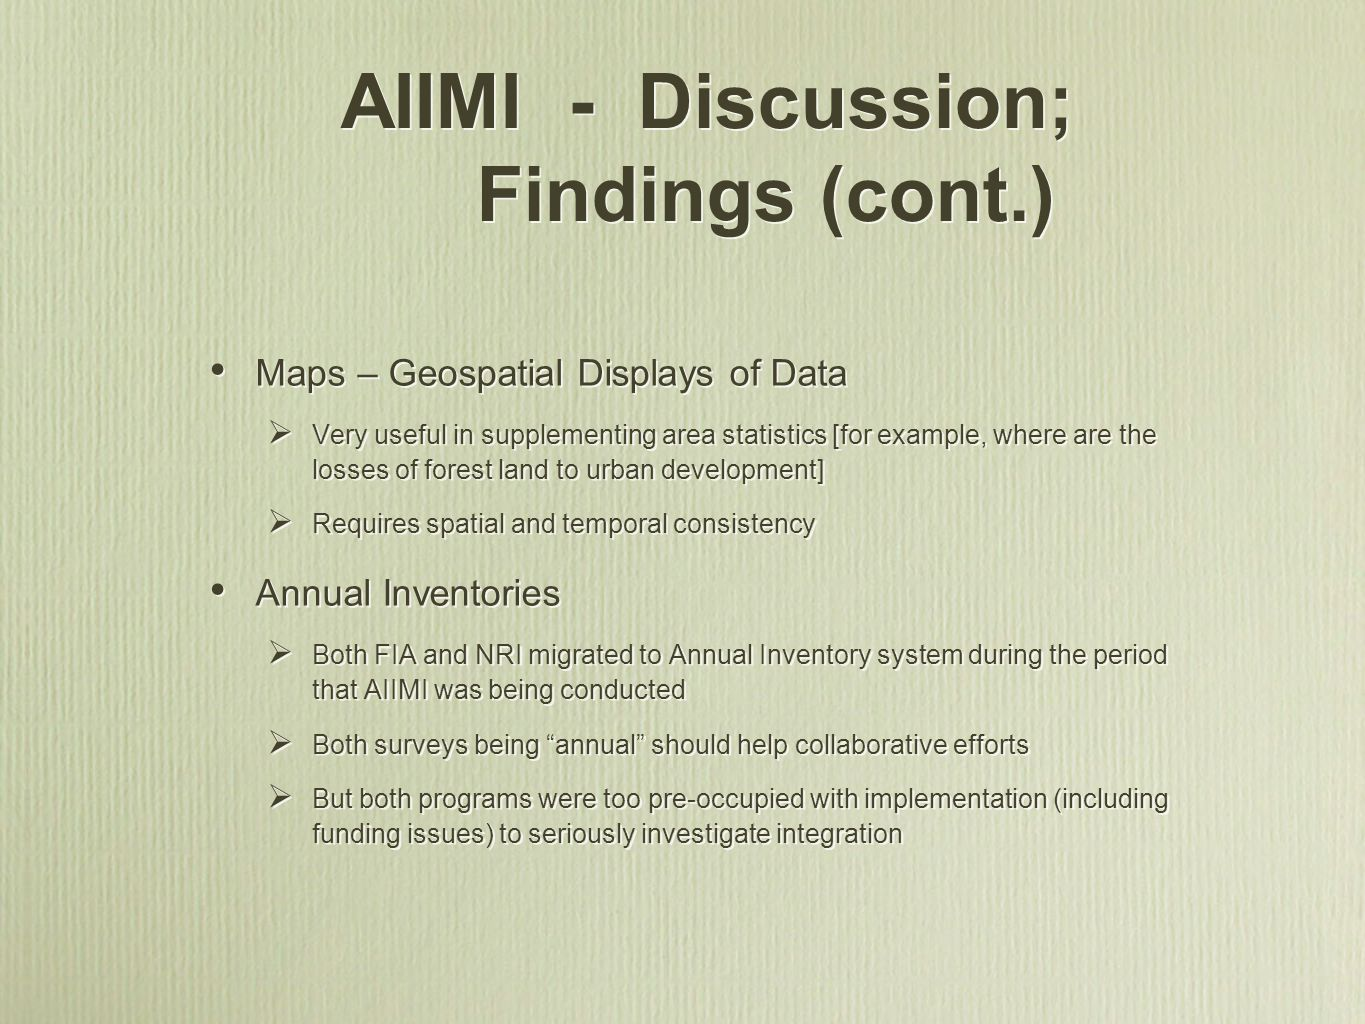 AIIMI - Discussion; Findings (cont.)